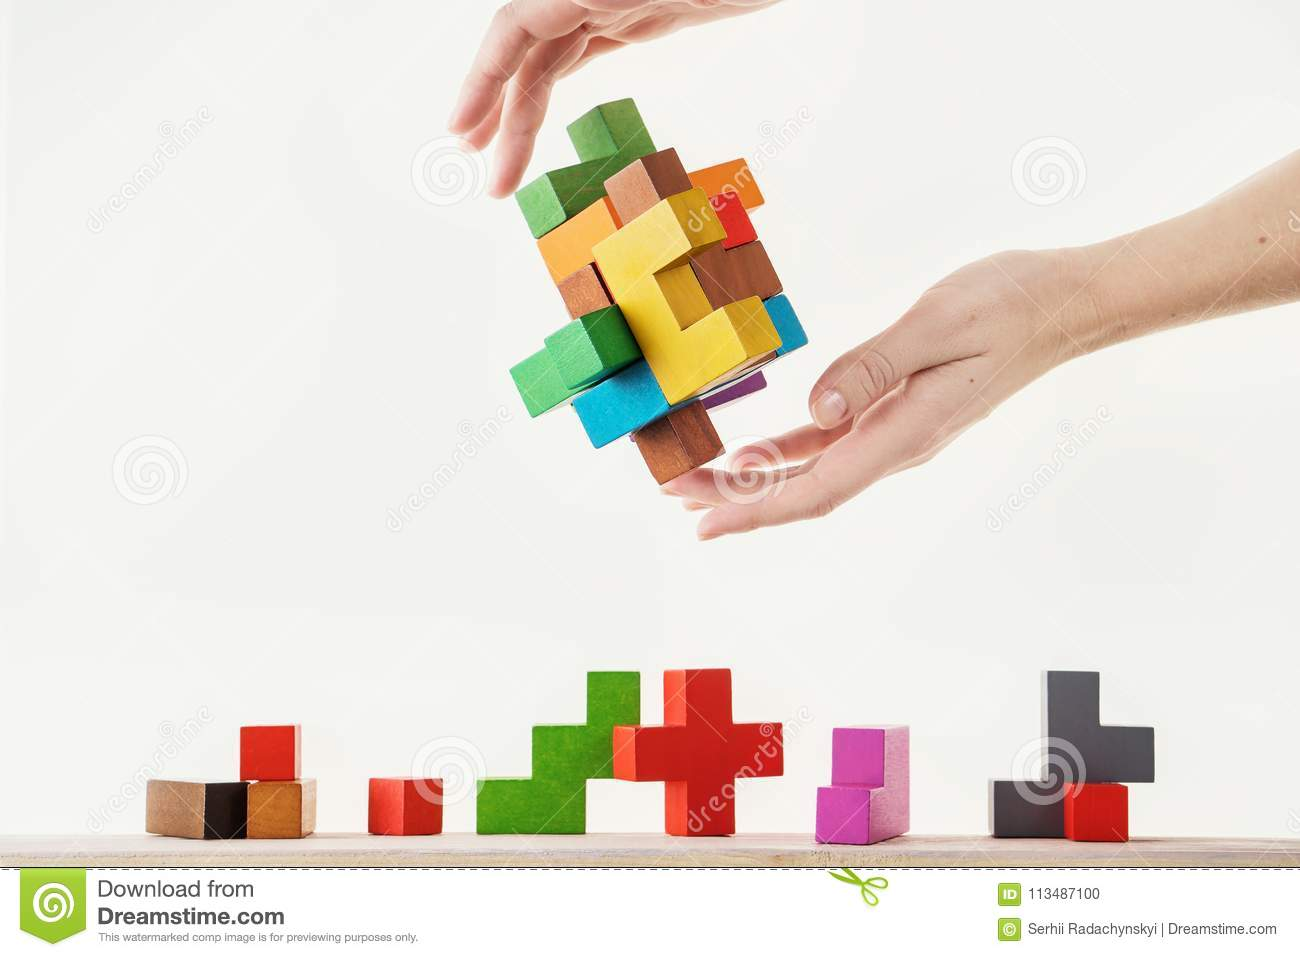 Concept Of Decision Making Process Stock Photo Image Conundrum Logic Diagram Logical Thinking Tasks Find The Missing Piece Proposed Hand Holding Wooden Puzzle Element